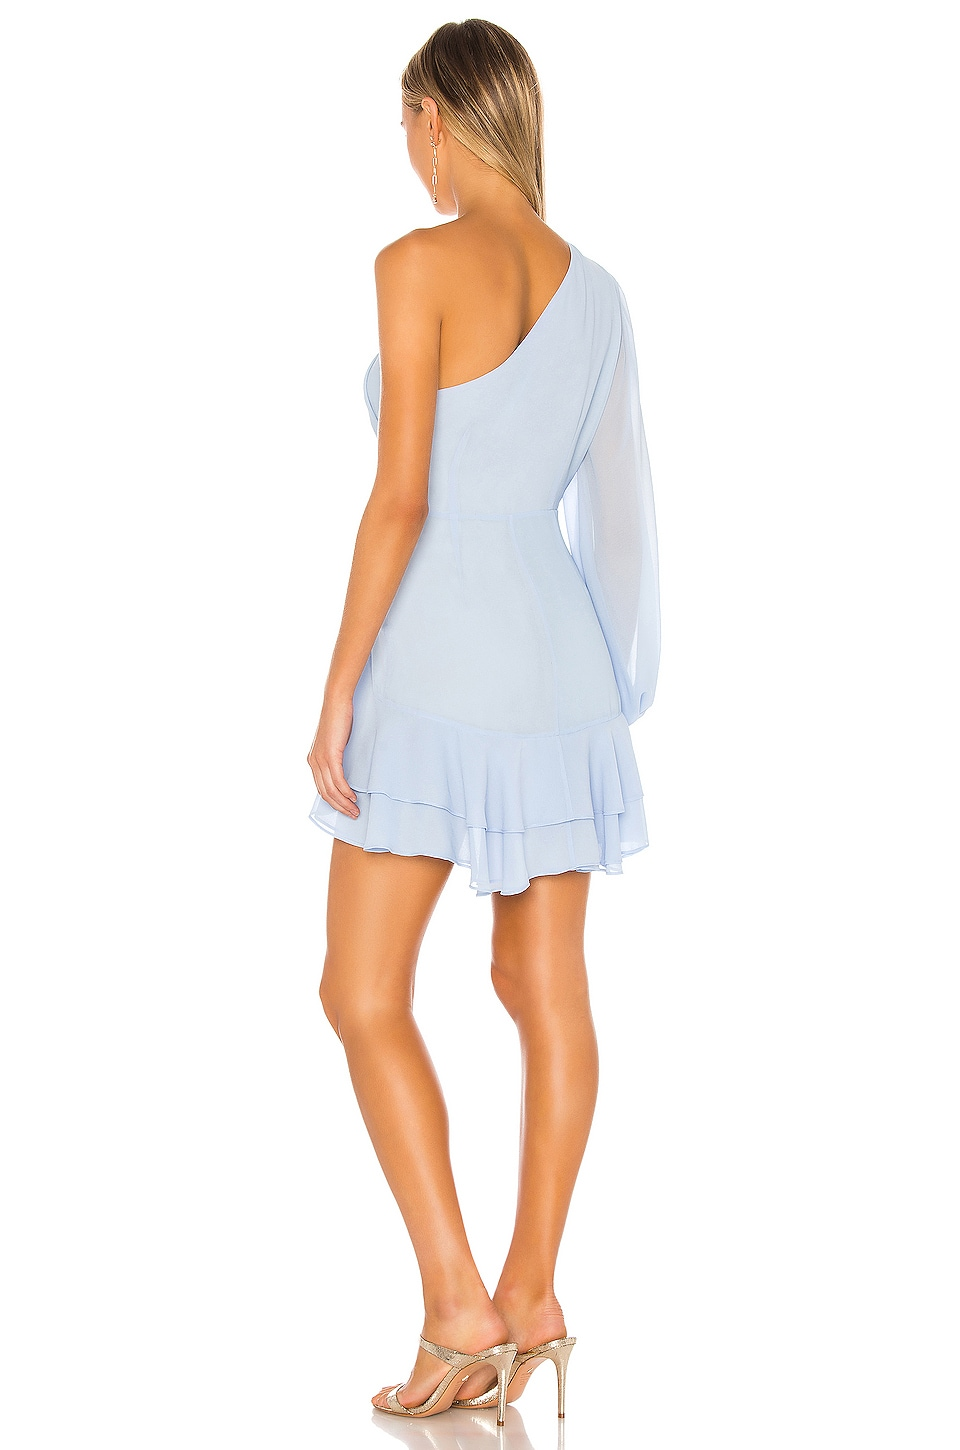 x REVOLVE Sunny Mini Dress, view 4, click to view large image.